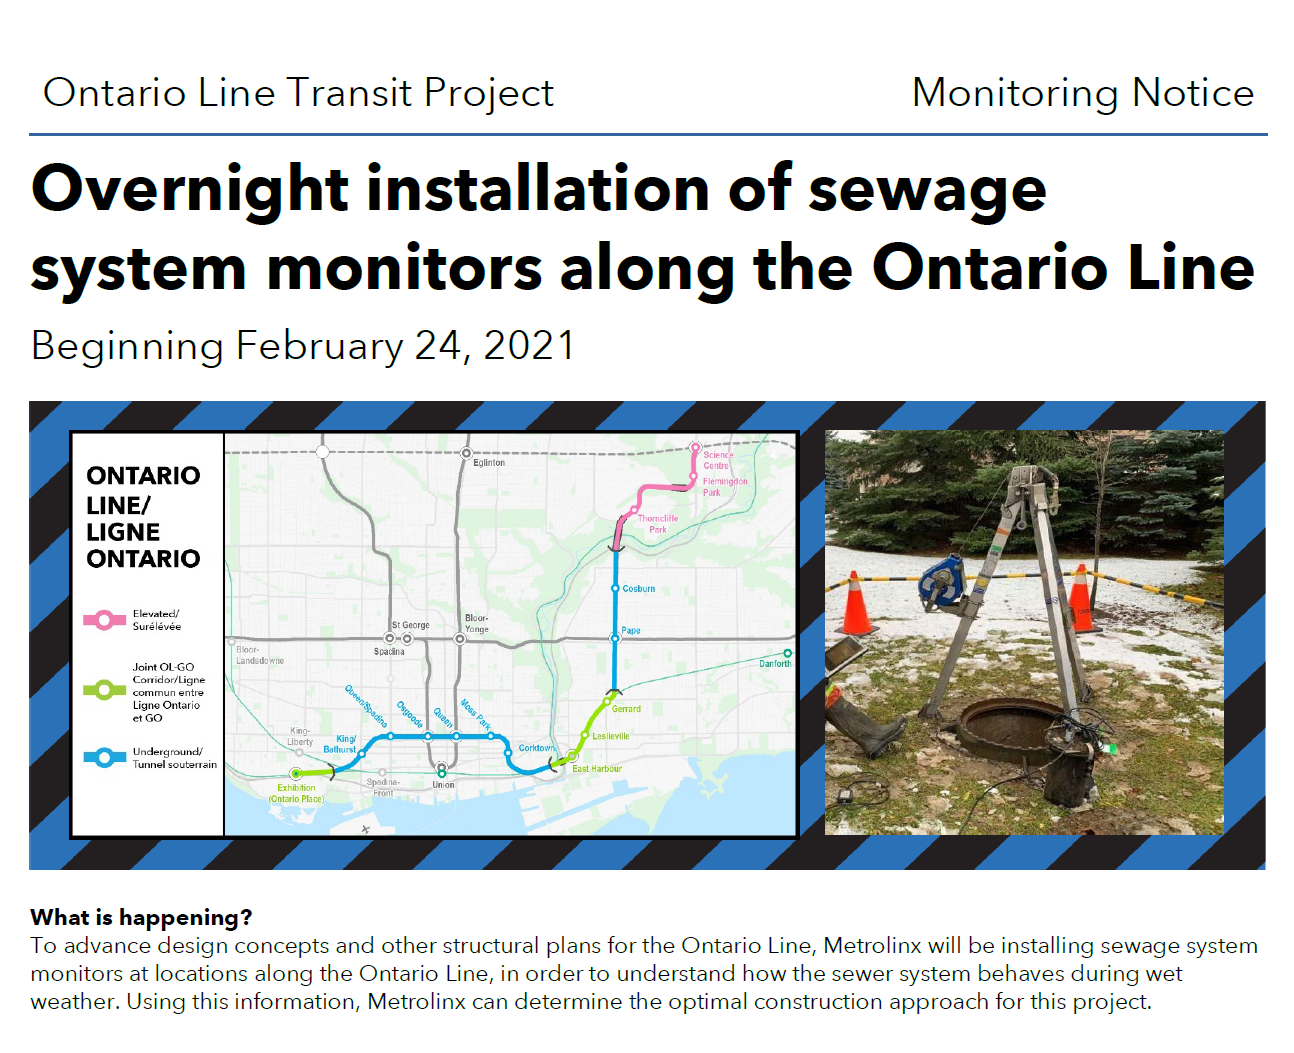 Overnight_installation_of_sewage_system_monitors_along_the_Ontario_Line.PNG